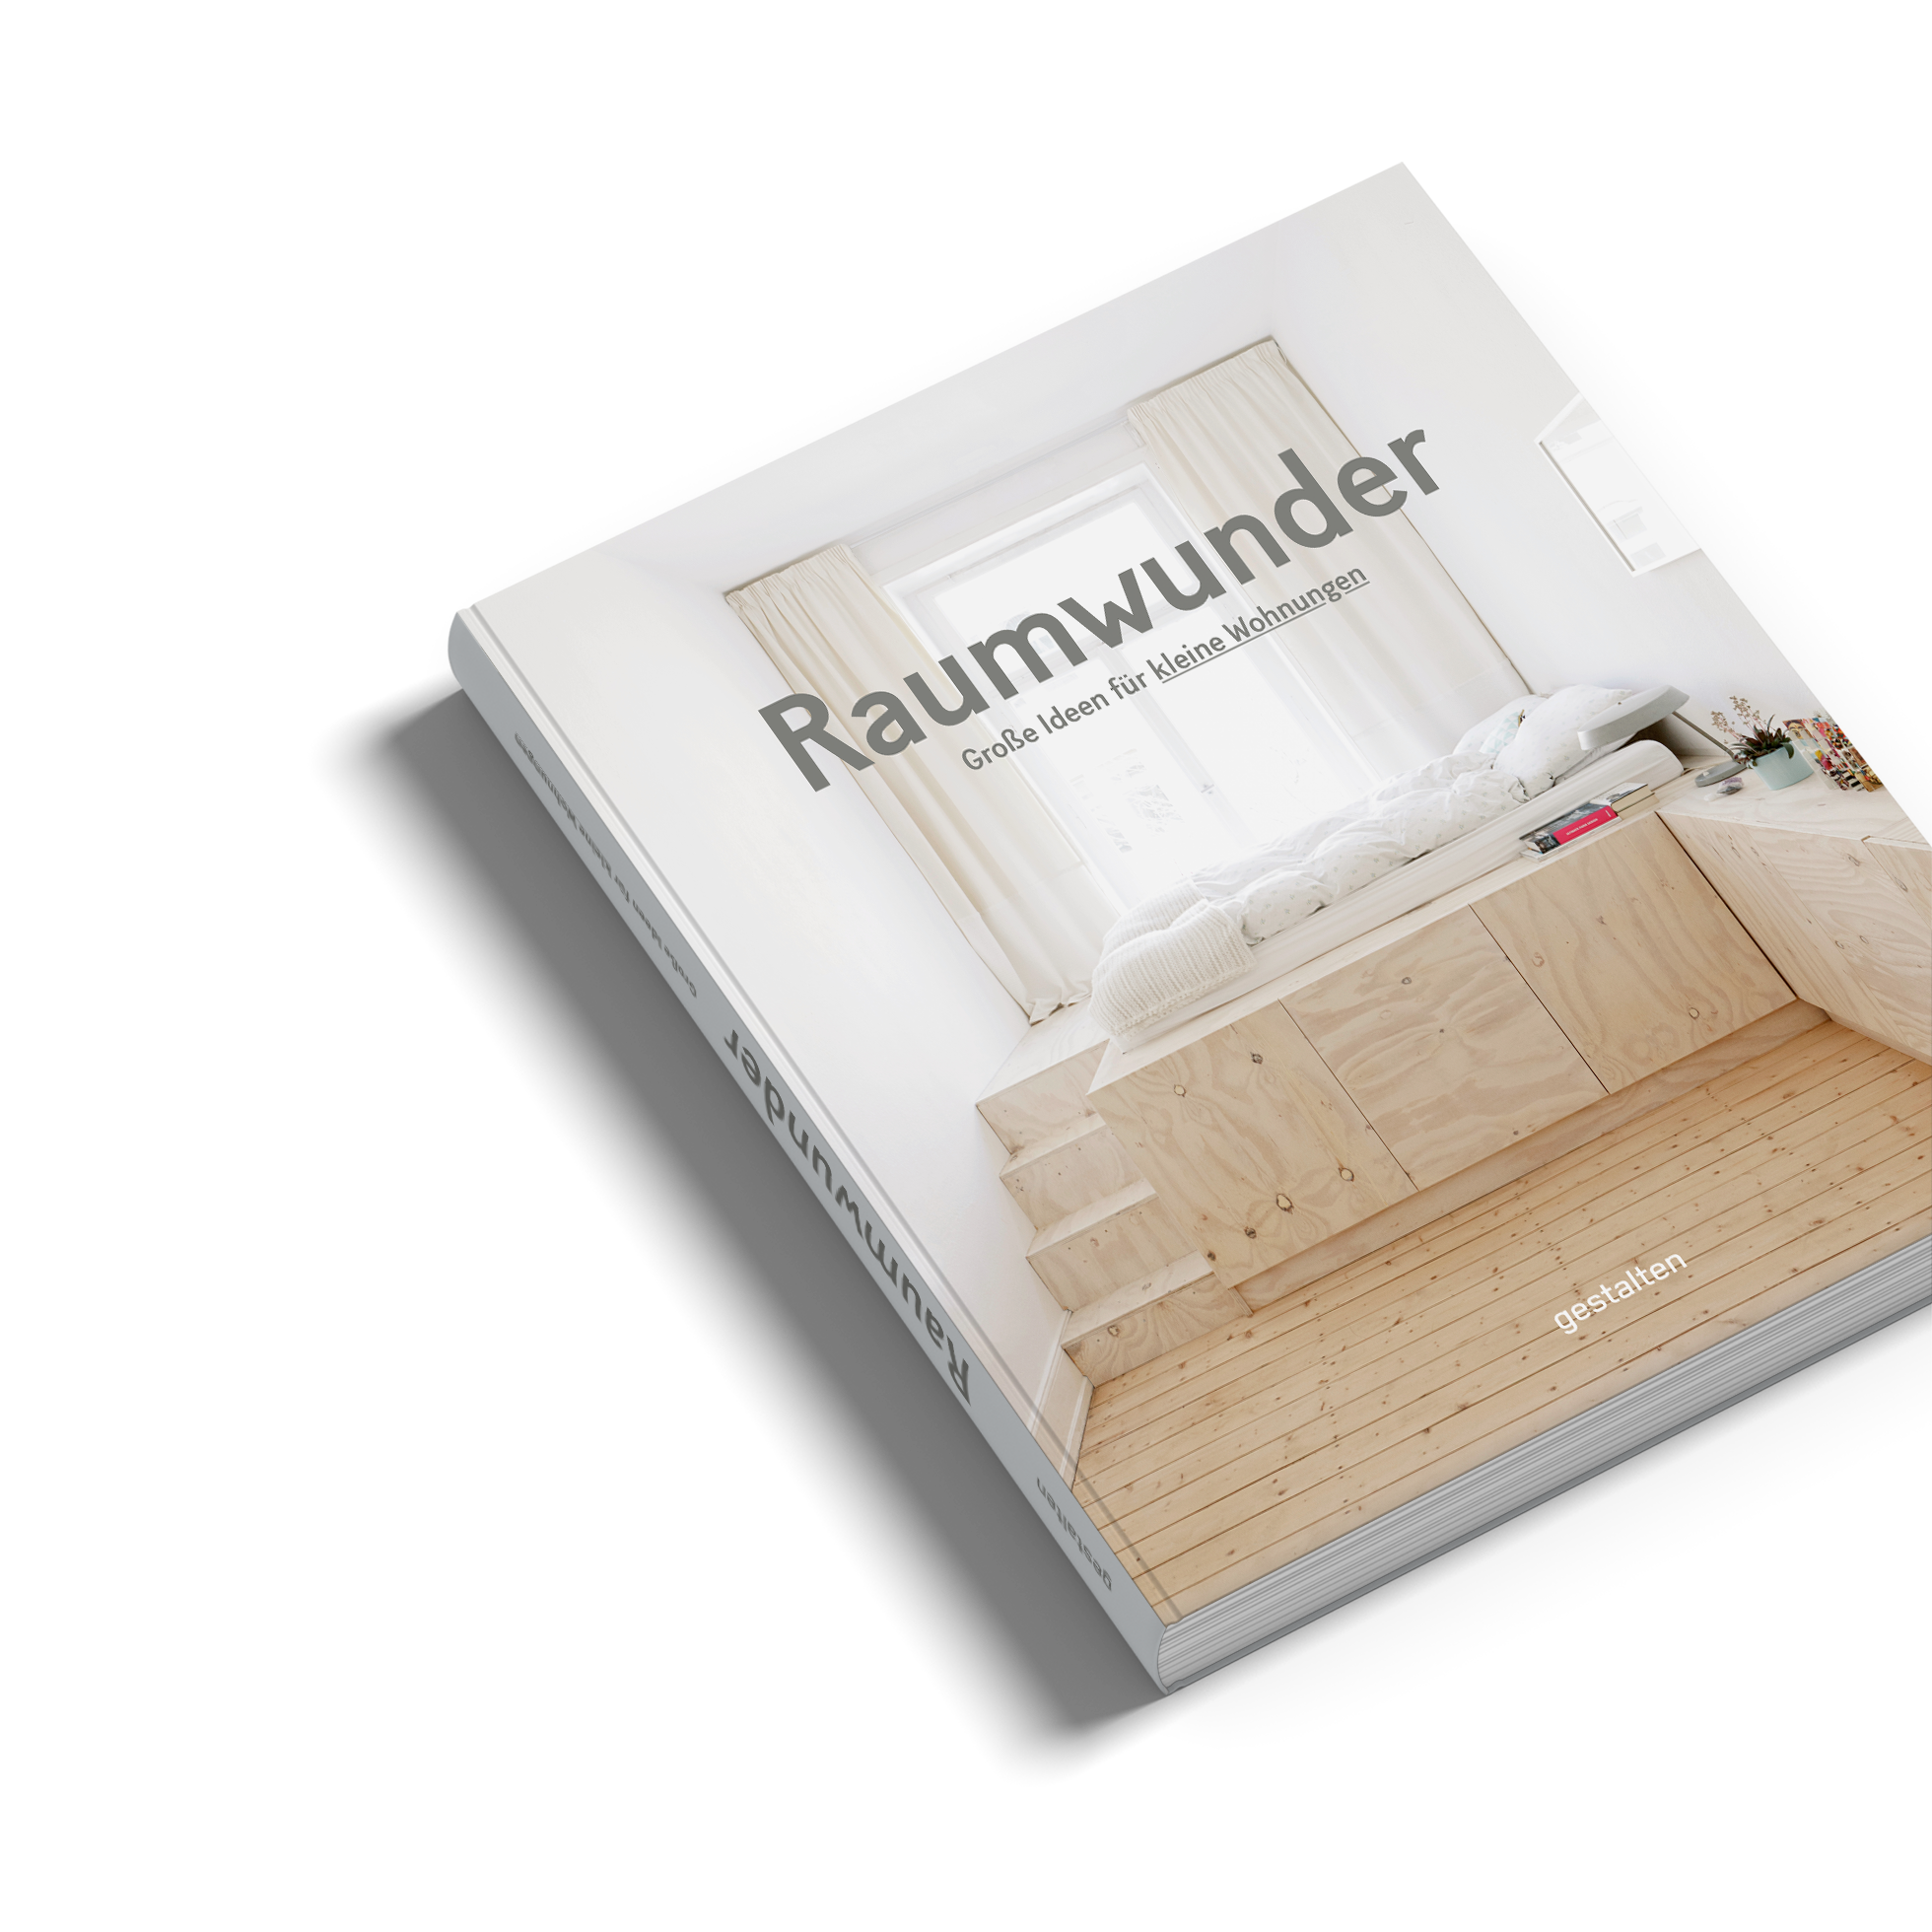 raumwunder gro e ideen f r kleine wohnungen gestalten. Black Bedroom Furniture Sets. Home Design Ideas